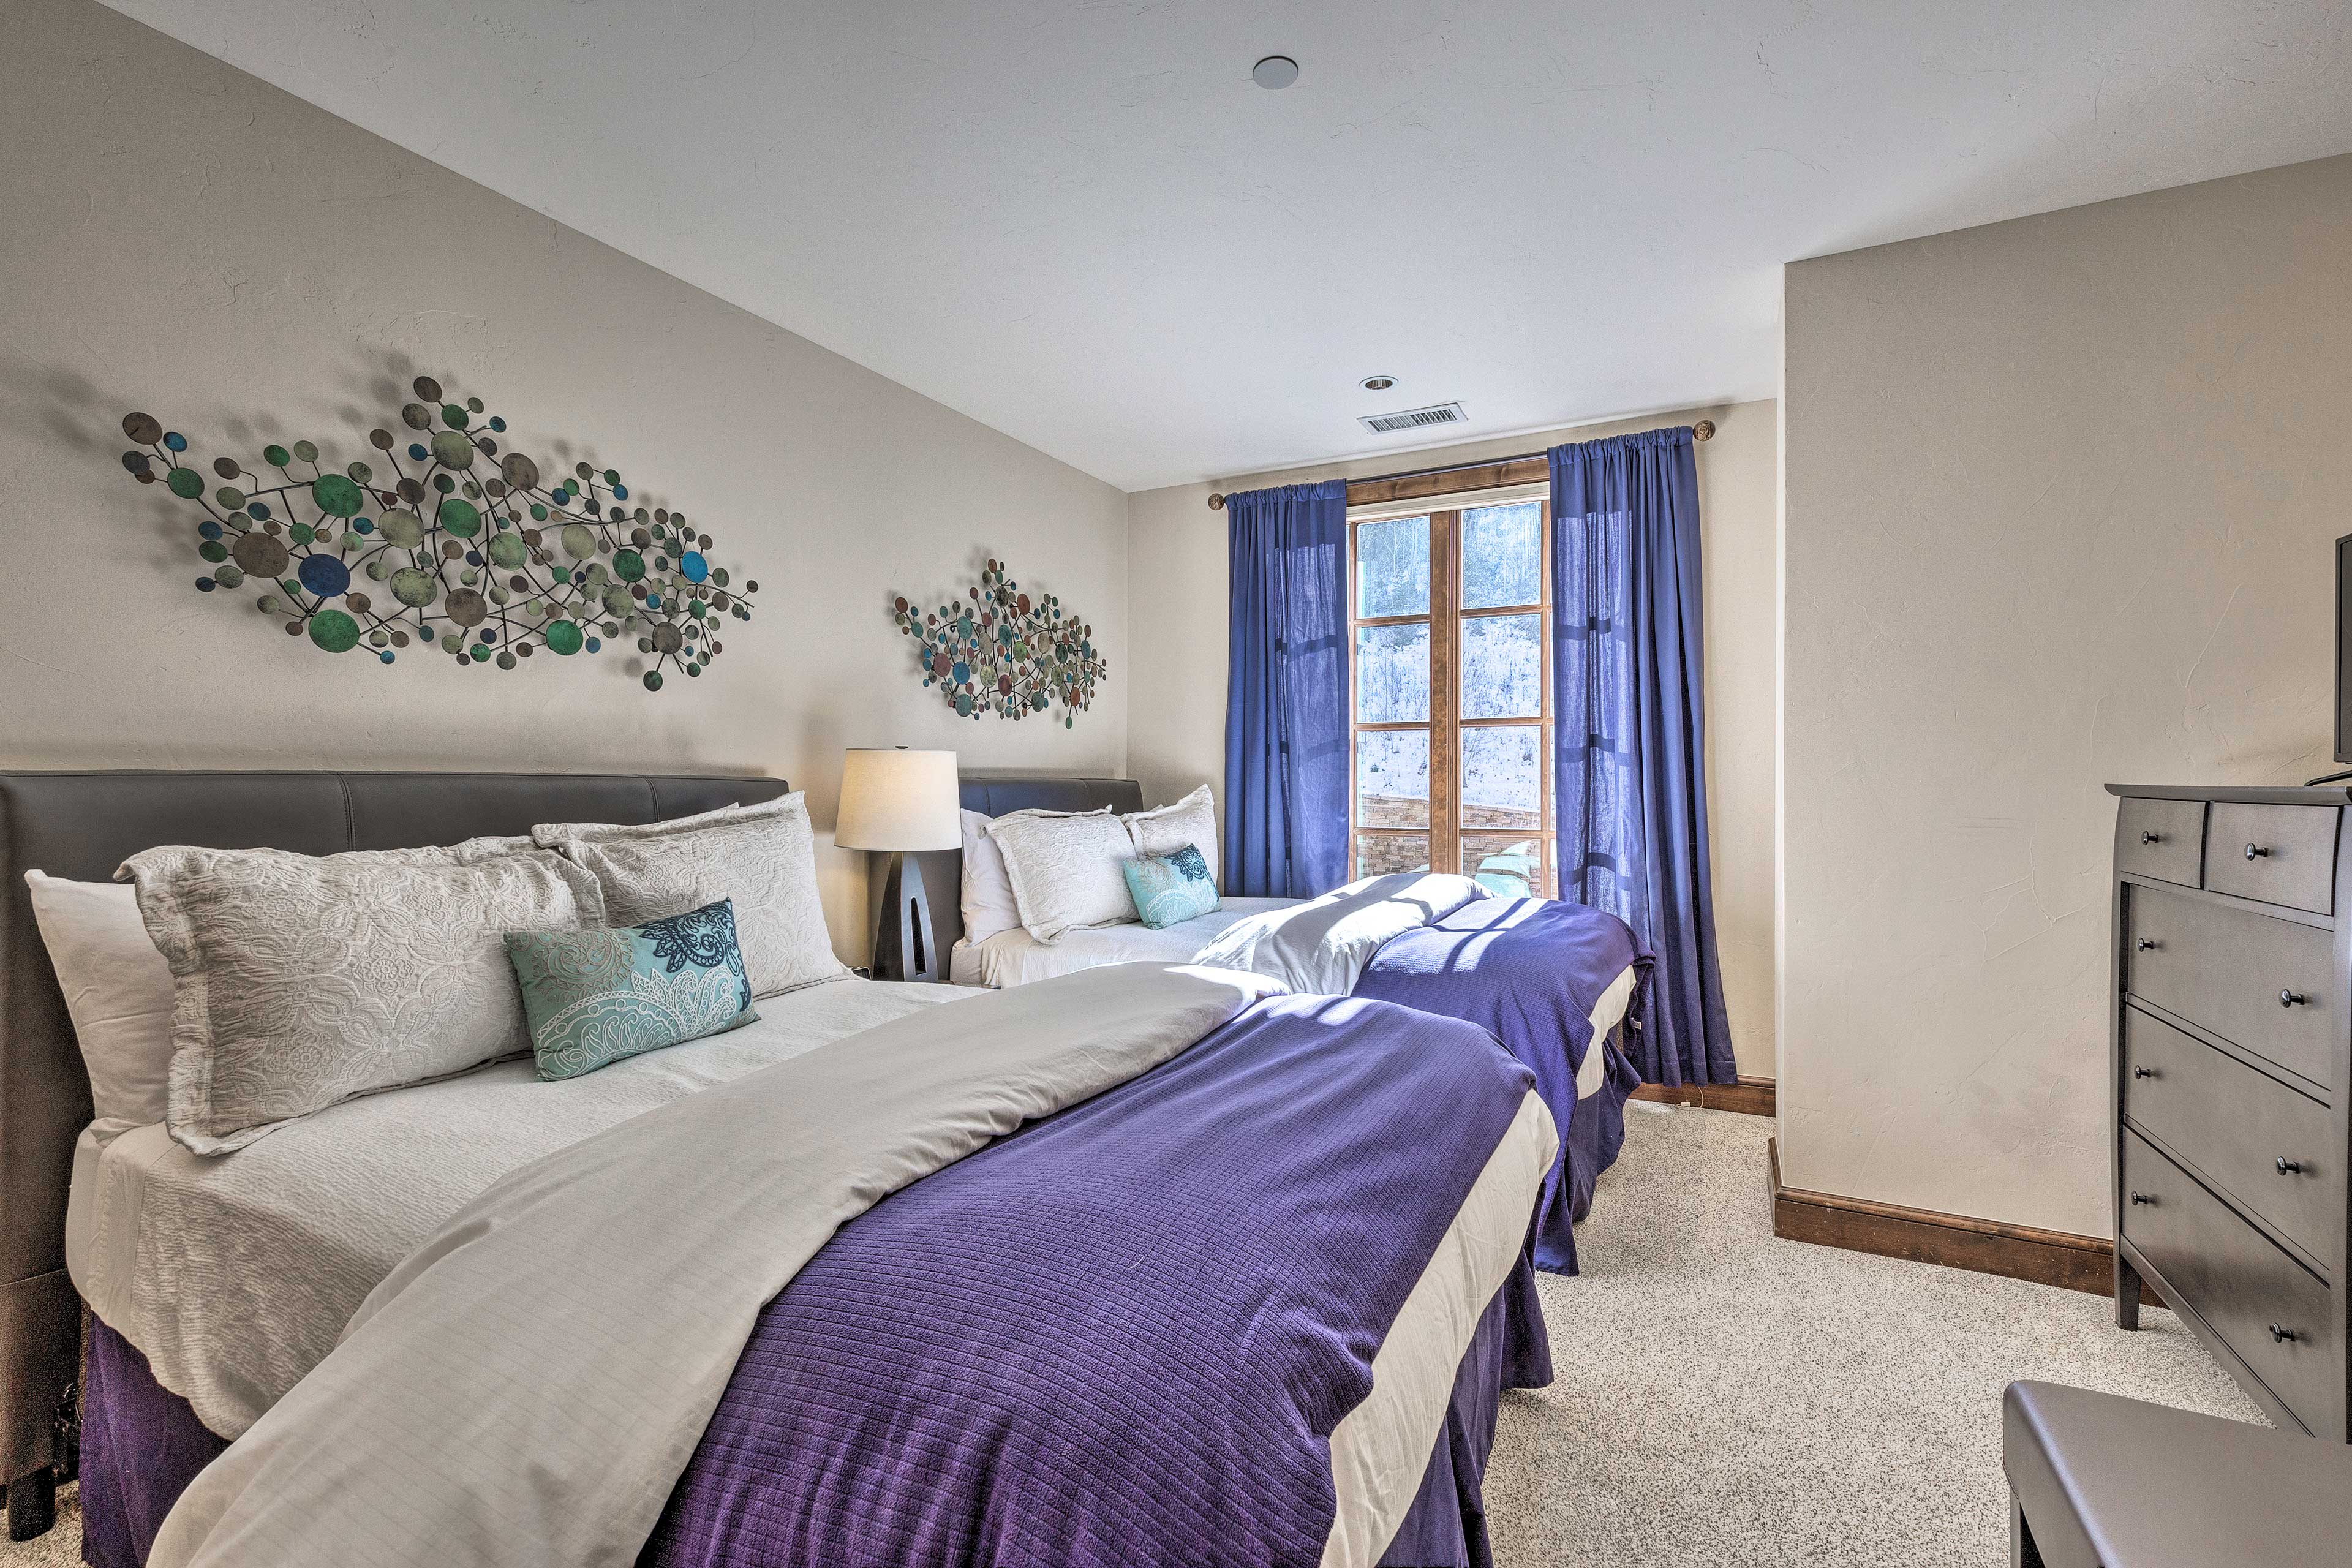 You're ensured a restful night in this bedroom.